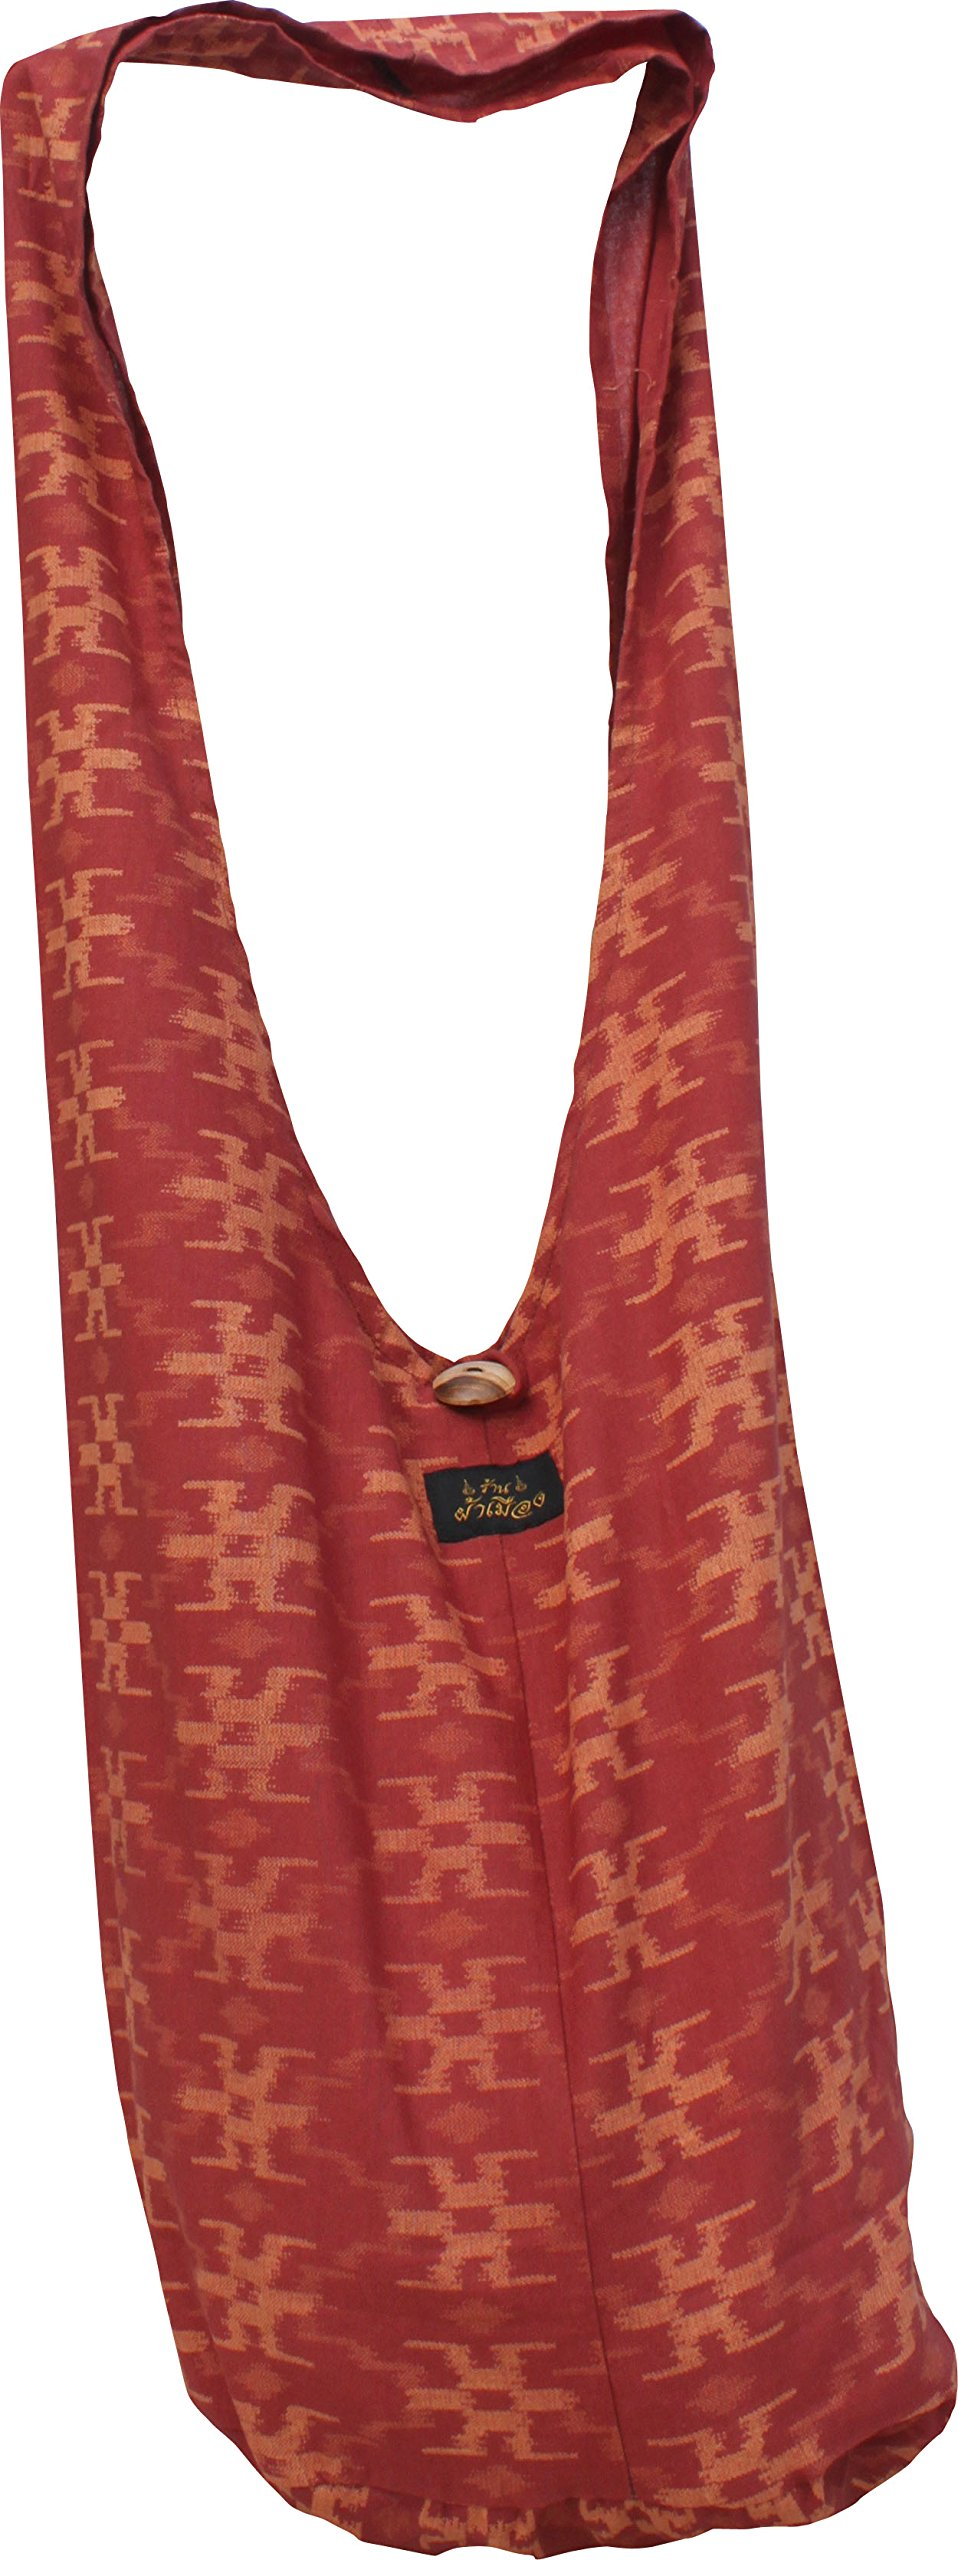 RaanPahMuang Brand Thin Printed Cotton Thai Yaam Shoulder Sling Bag - Weave Art, Small, Rust Brow